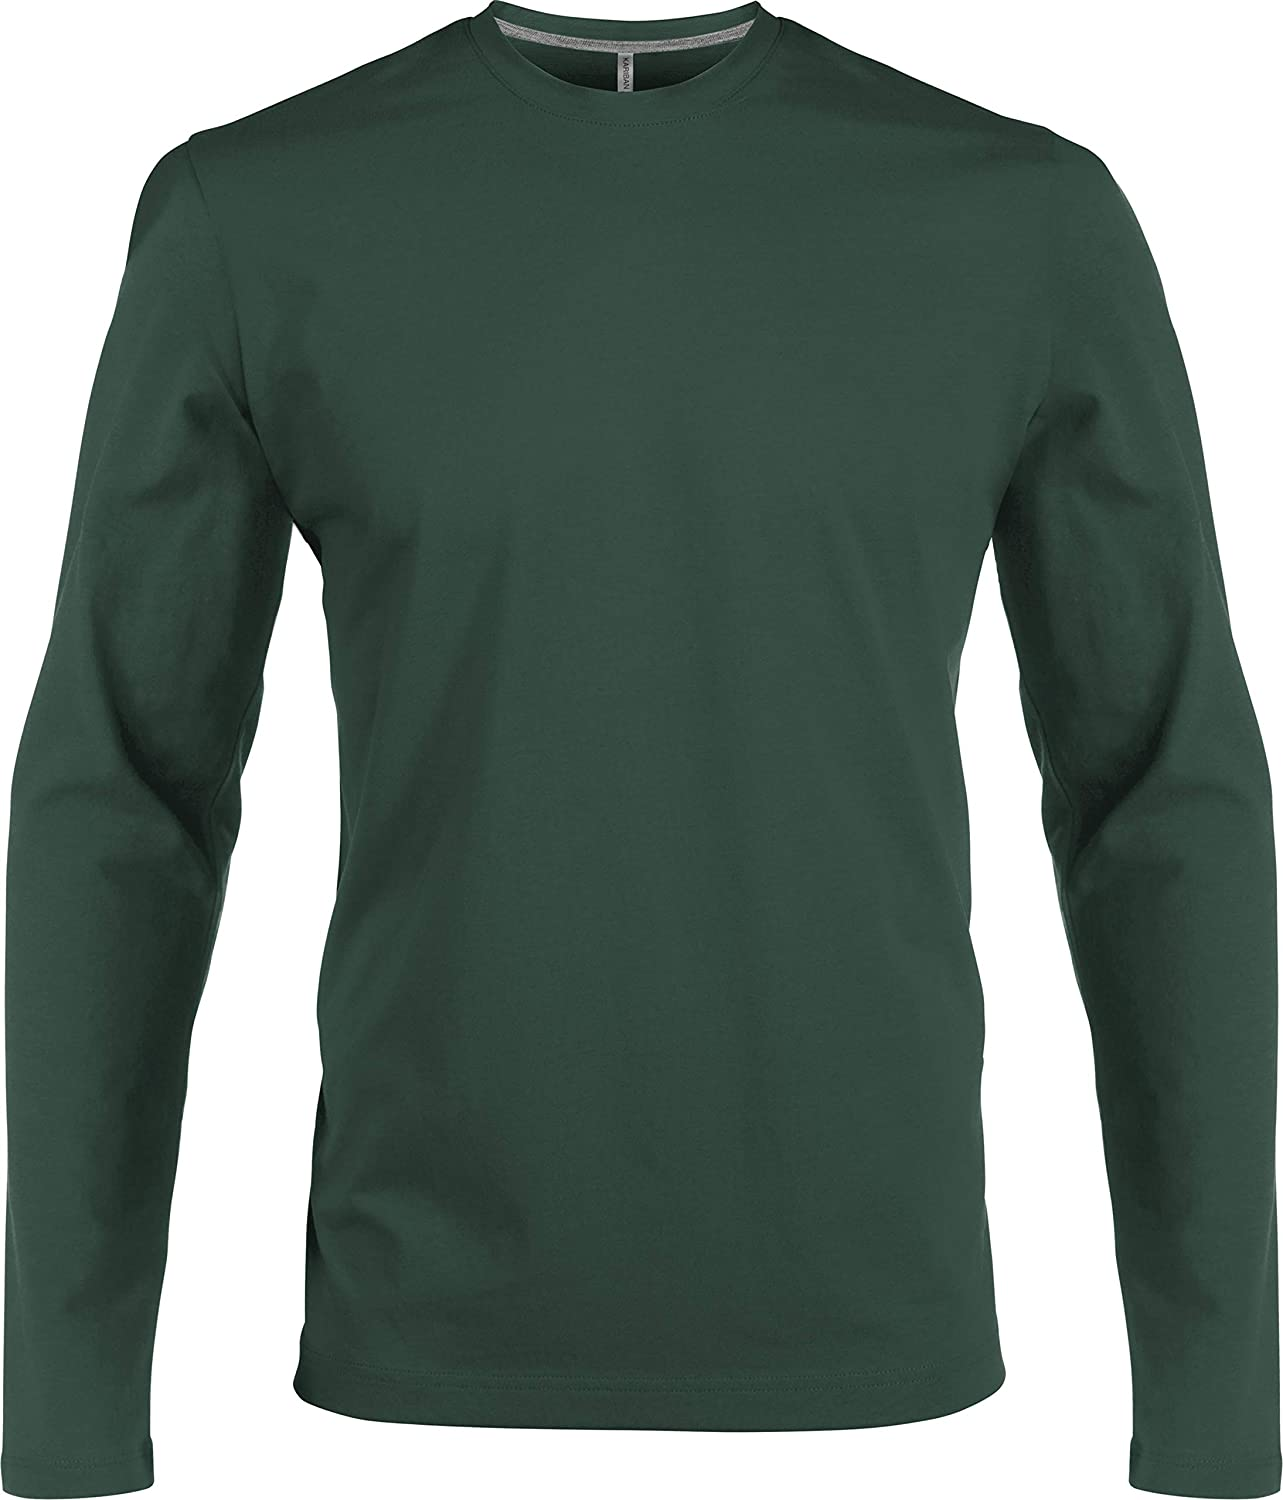 M Kariban NoTrash2003 Long Sleeve Crew Neck T-Shirt 3XL and 4XL XL Easy to Wear in 20 Colours and Sizes S L 2XL